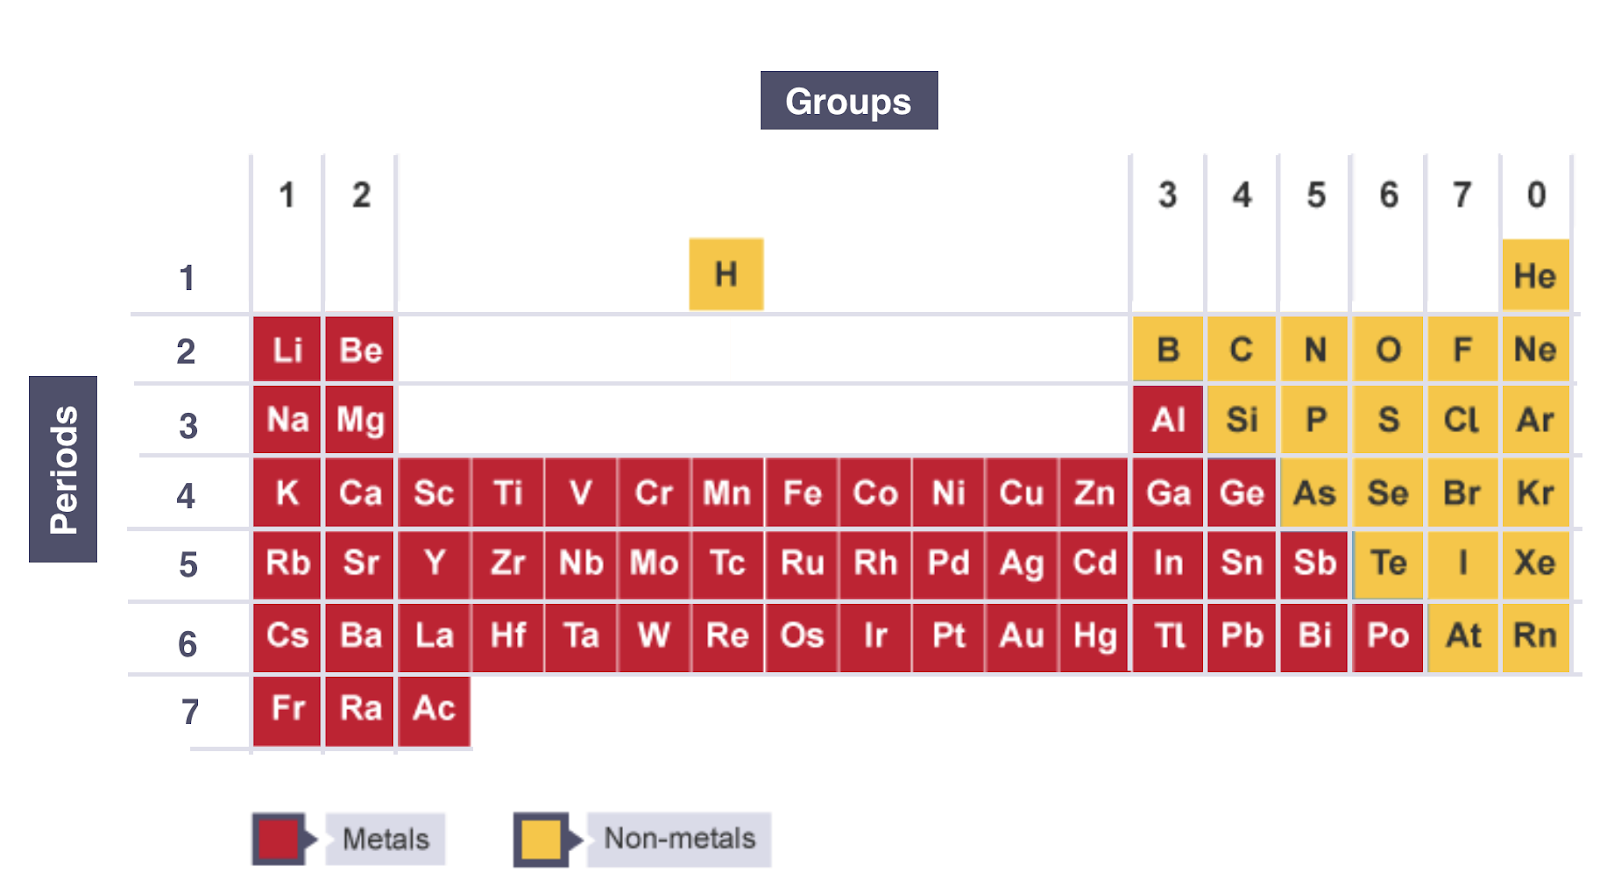 Igcse chemistry 2017 118 understand how elements are arranged in the periodic table all elements are arranged urtaz Images